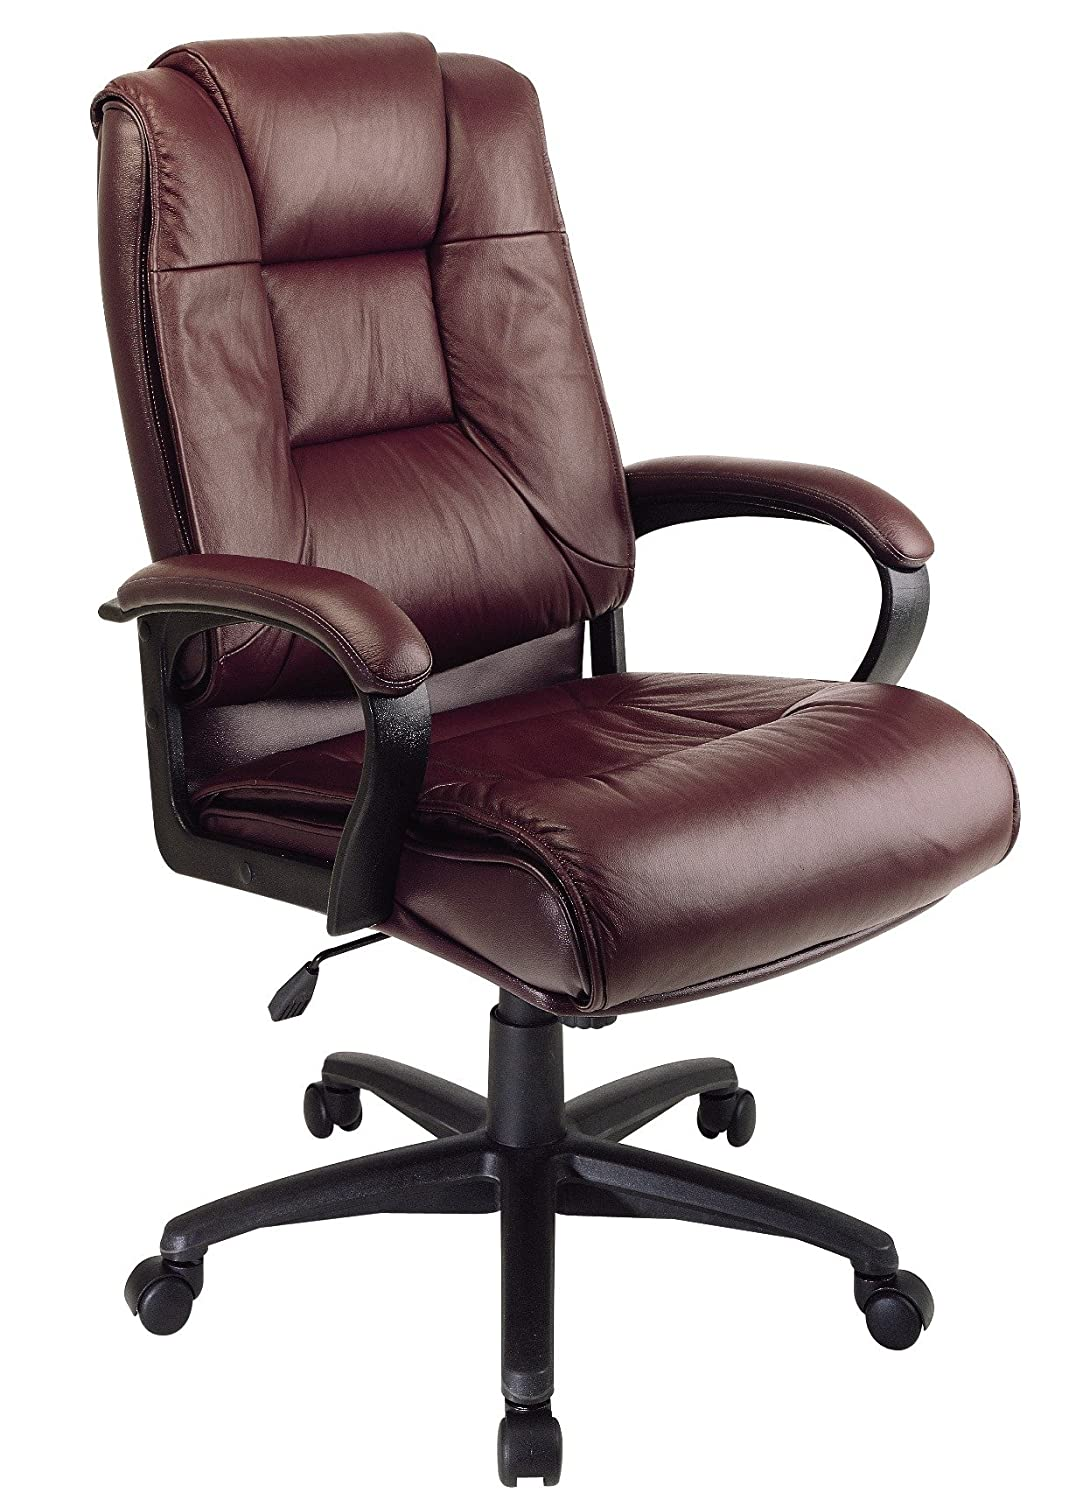 Amazon.com: Office Star EX5162-4 Leather High-Back Office Chair ...